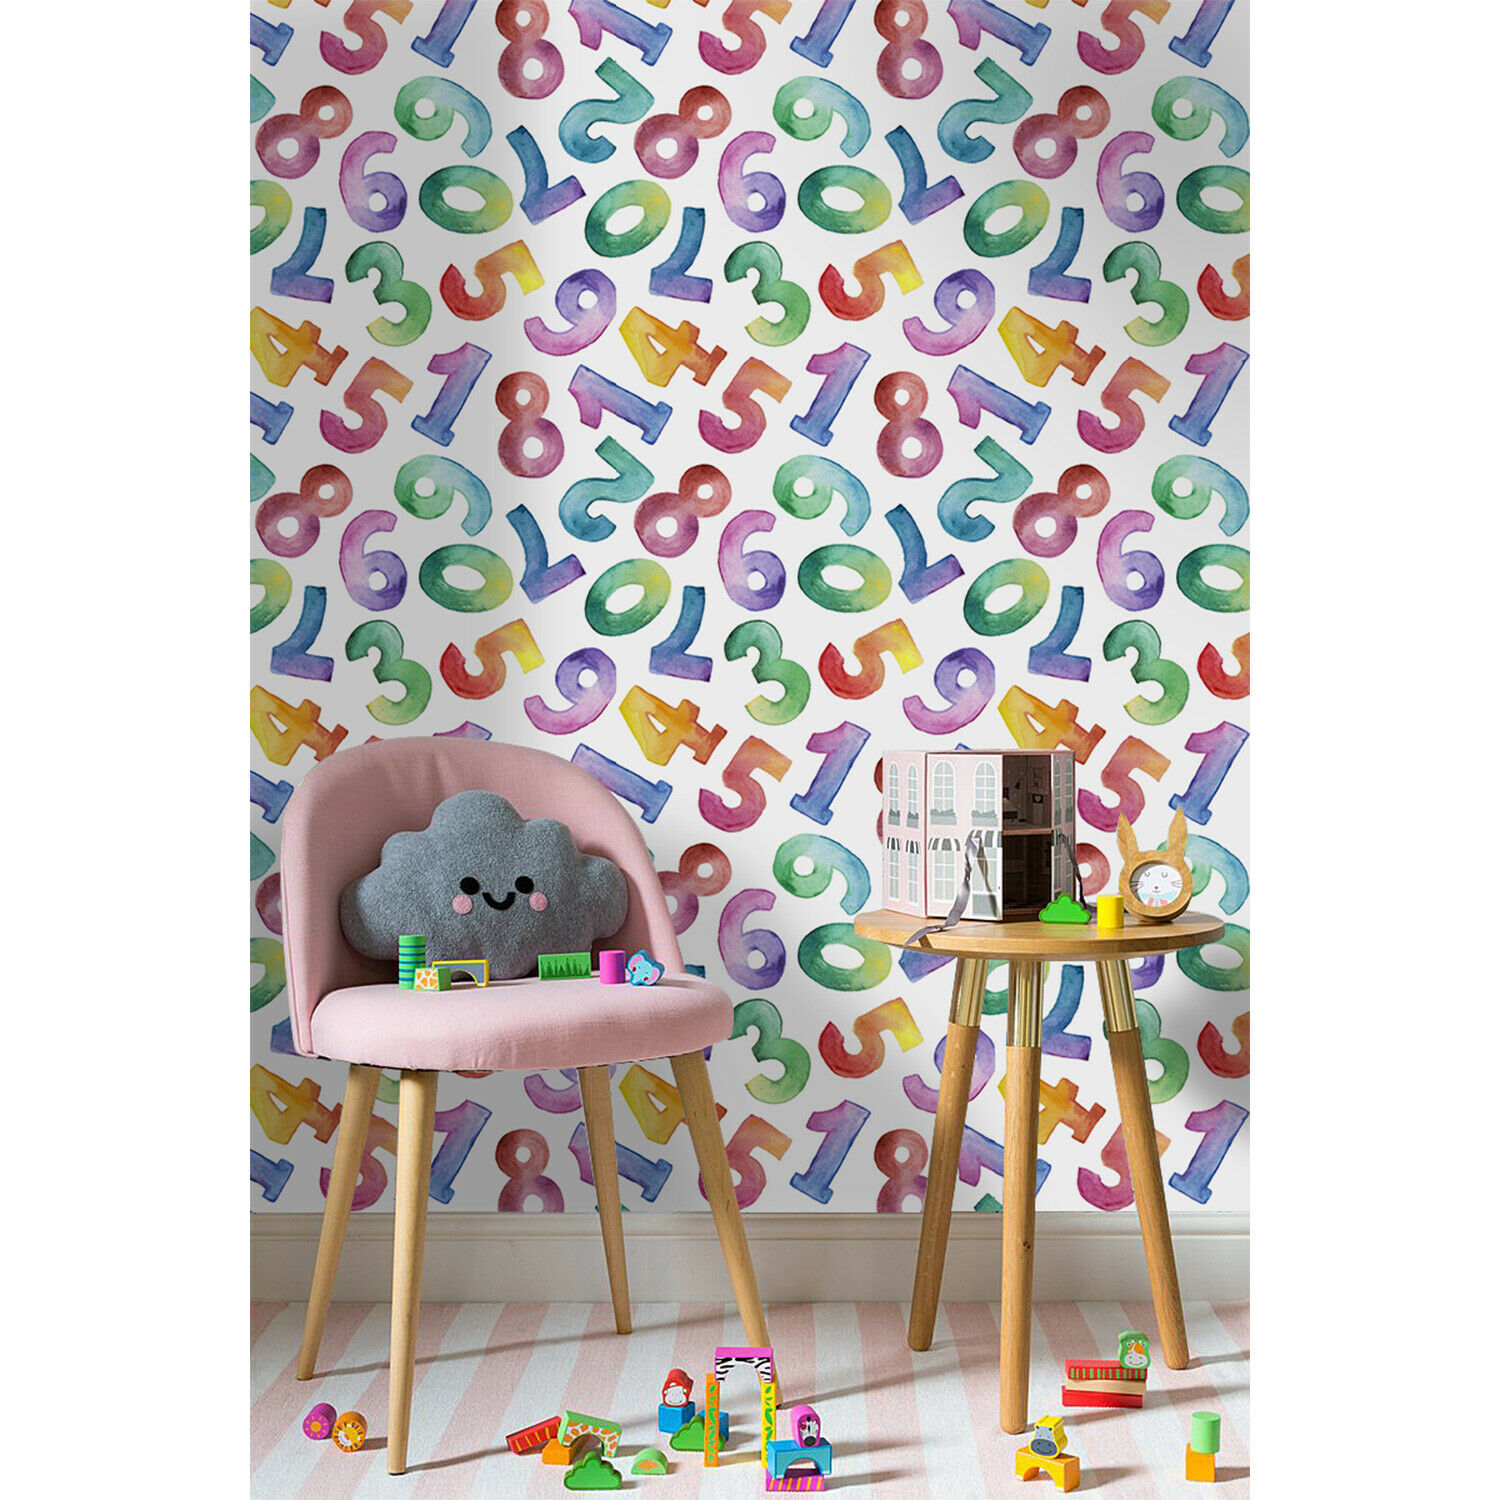 Removable Wallpaper adhesive Farbeful numbers WaterFarbe for kids room mural